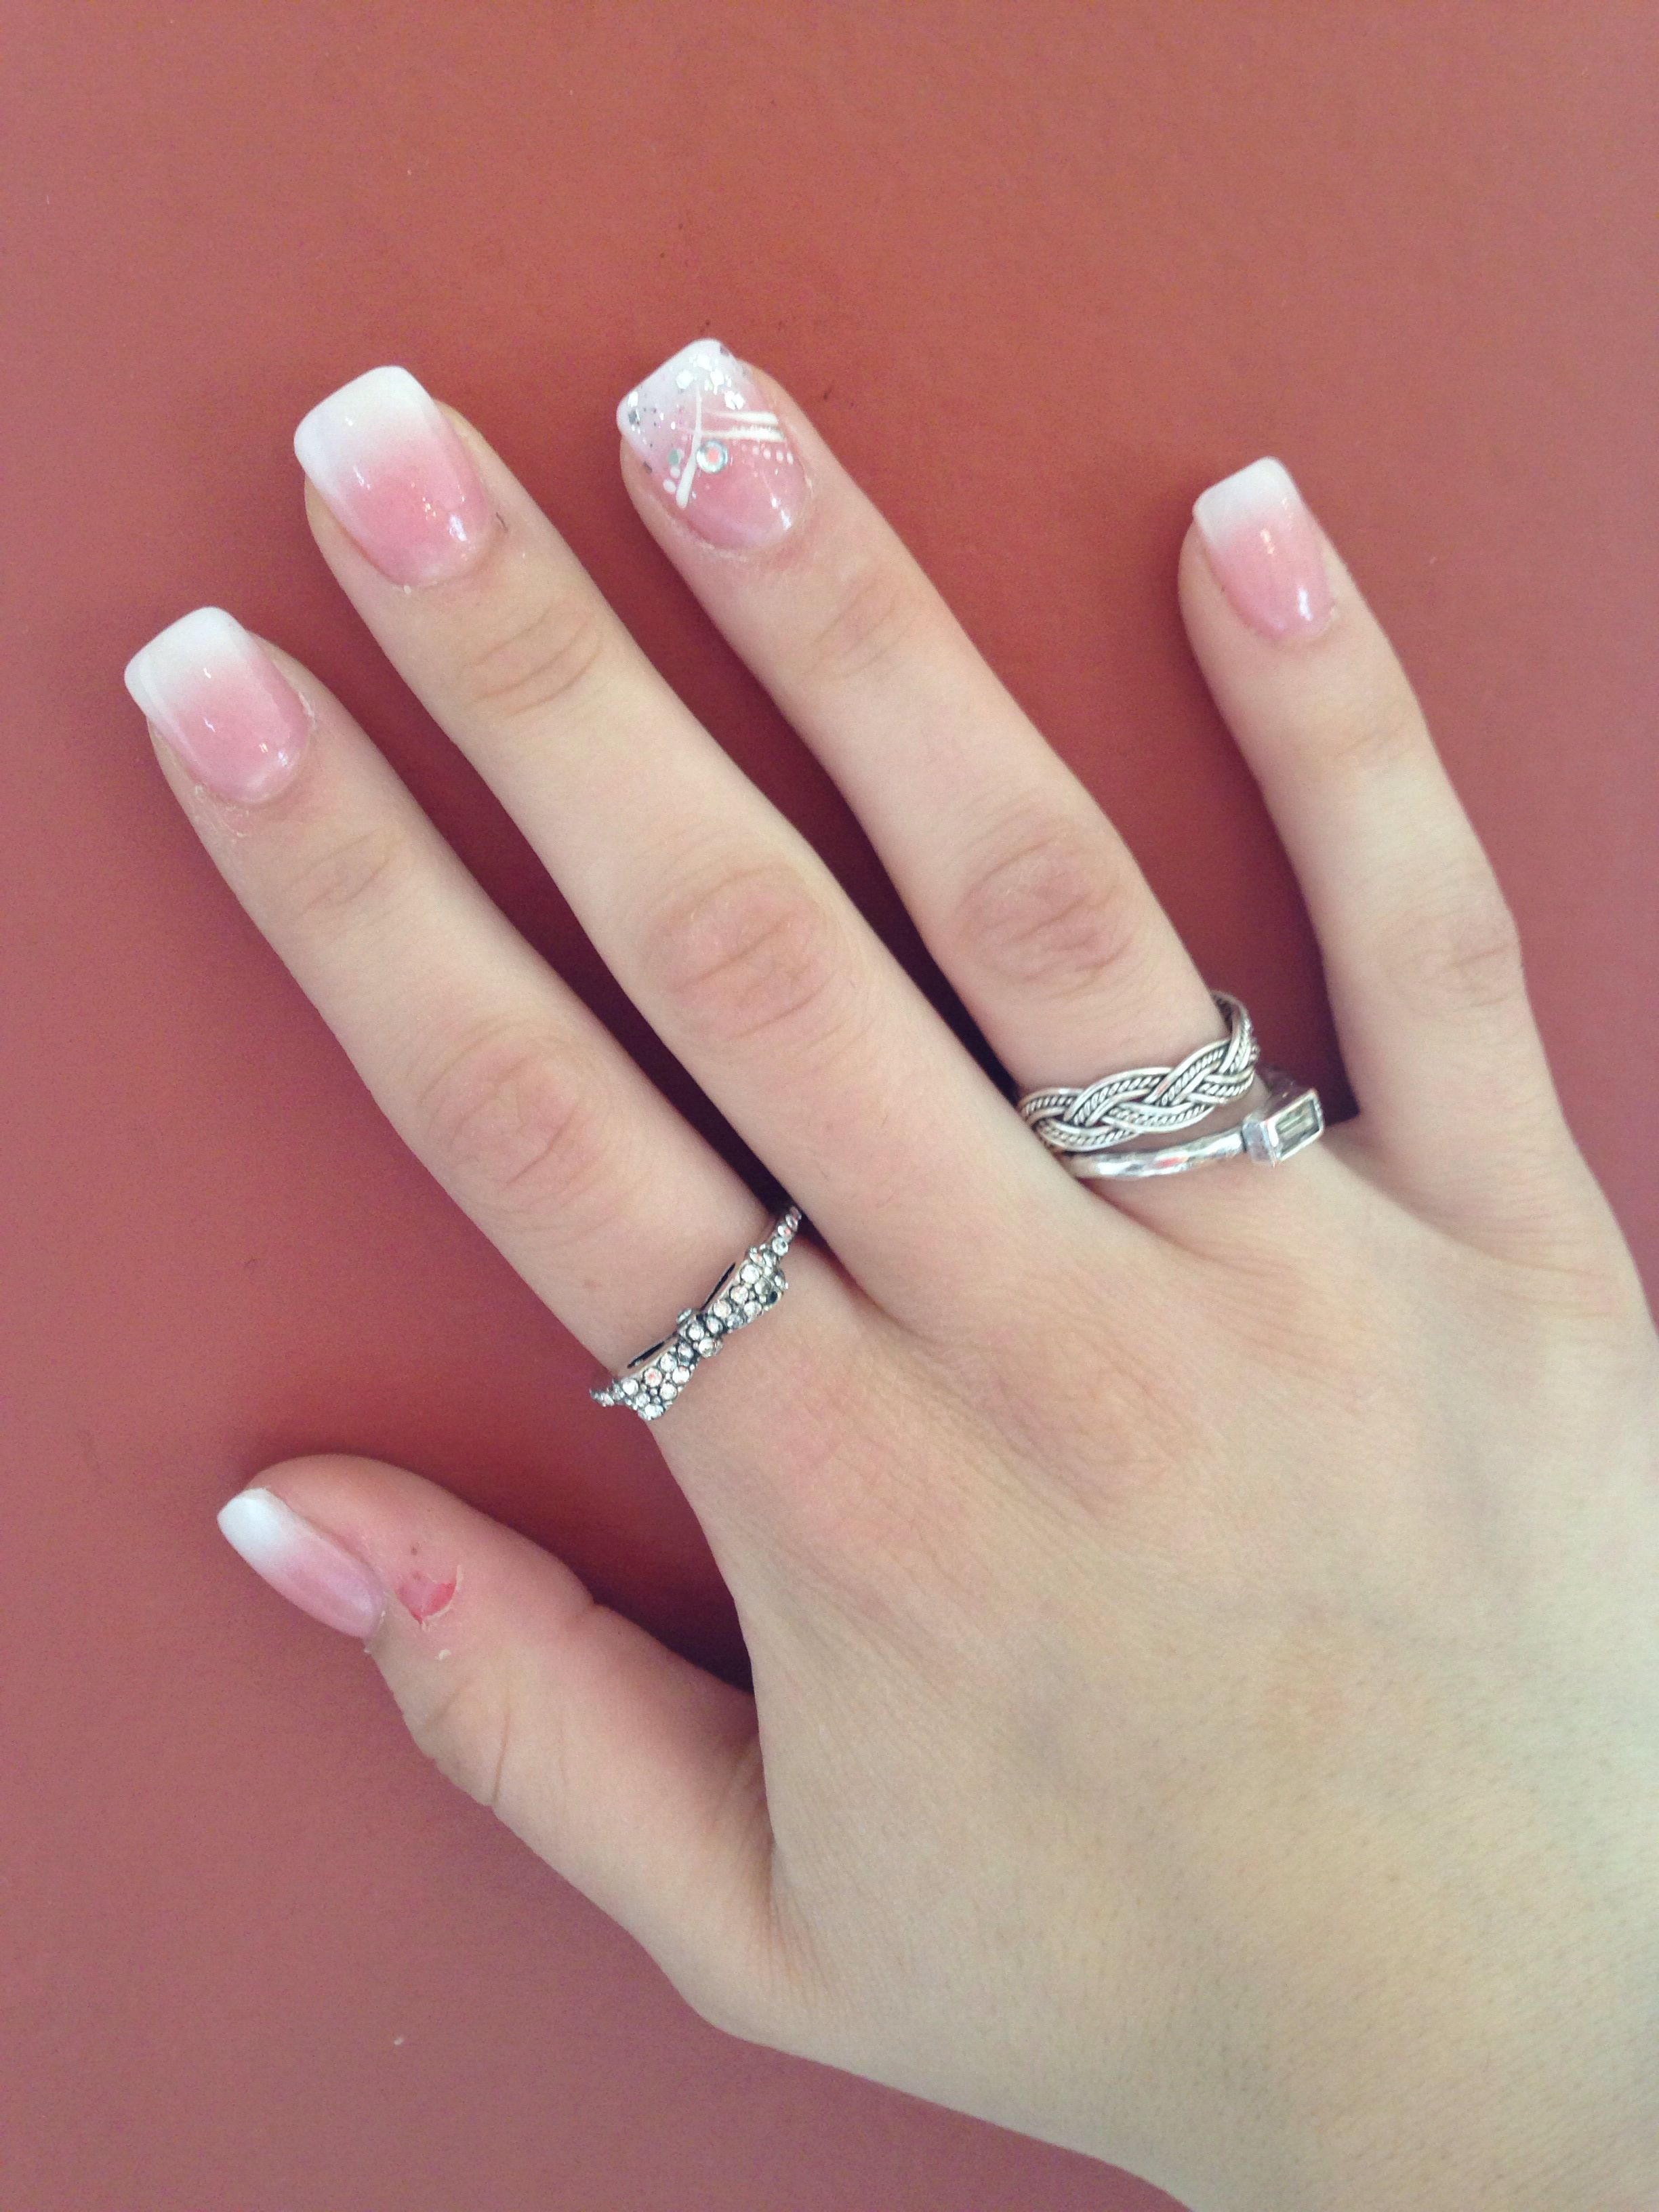 Full set acrylics ombre faded french manicure with rhinestone